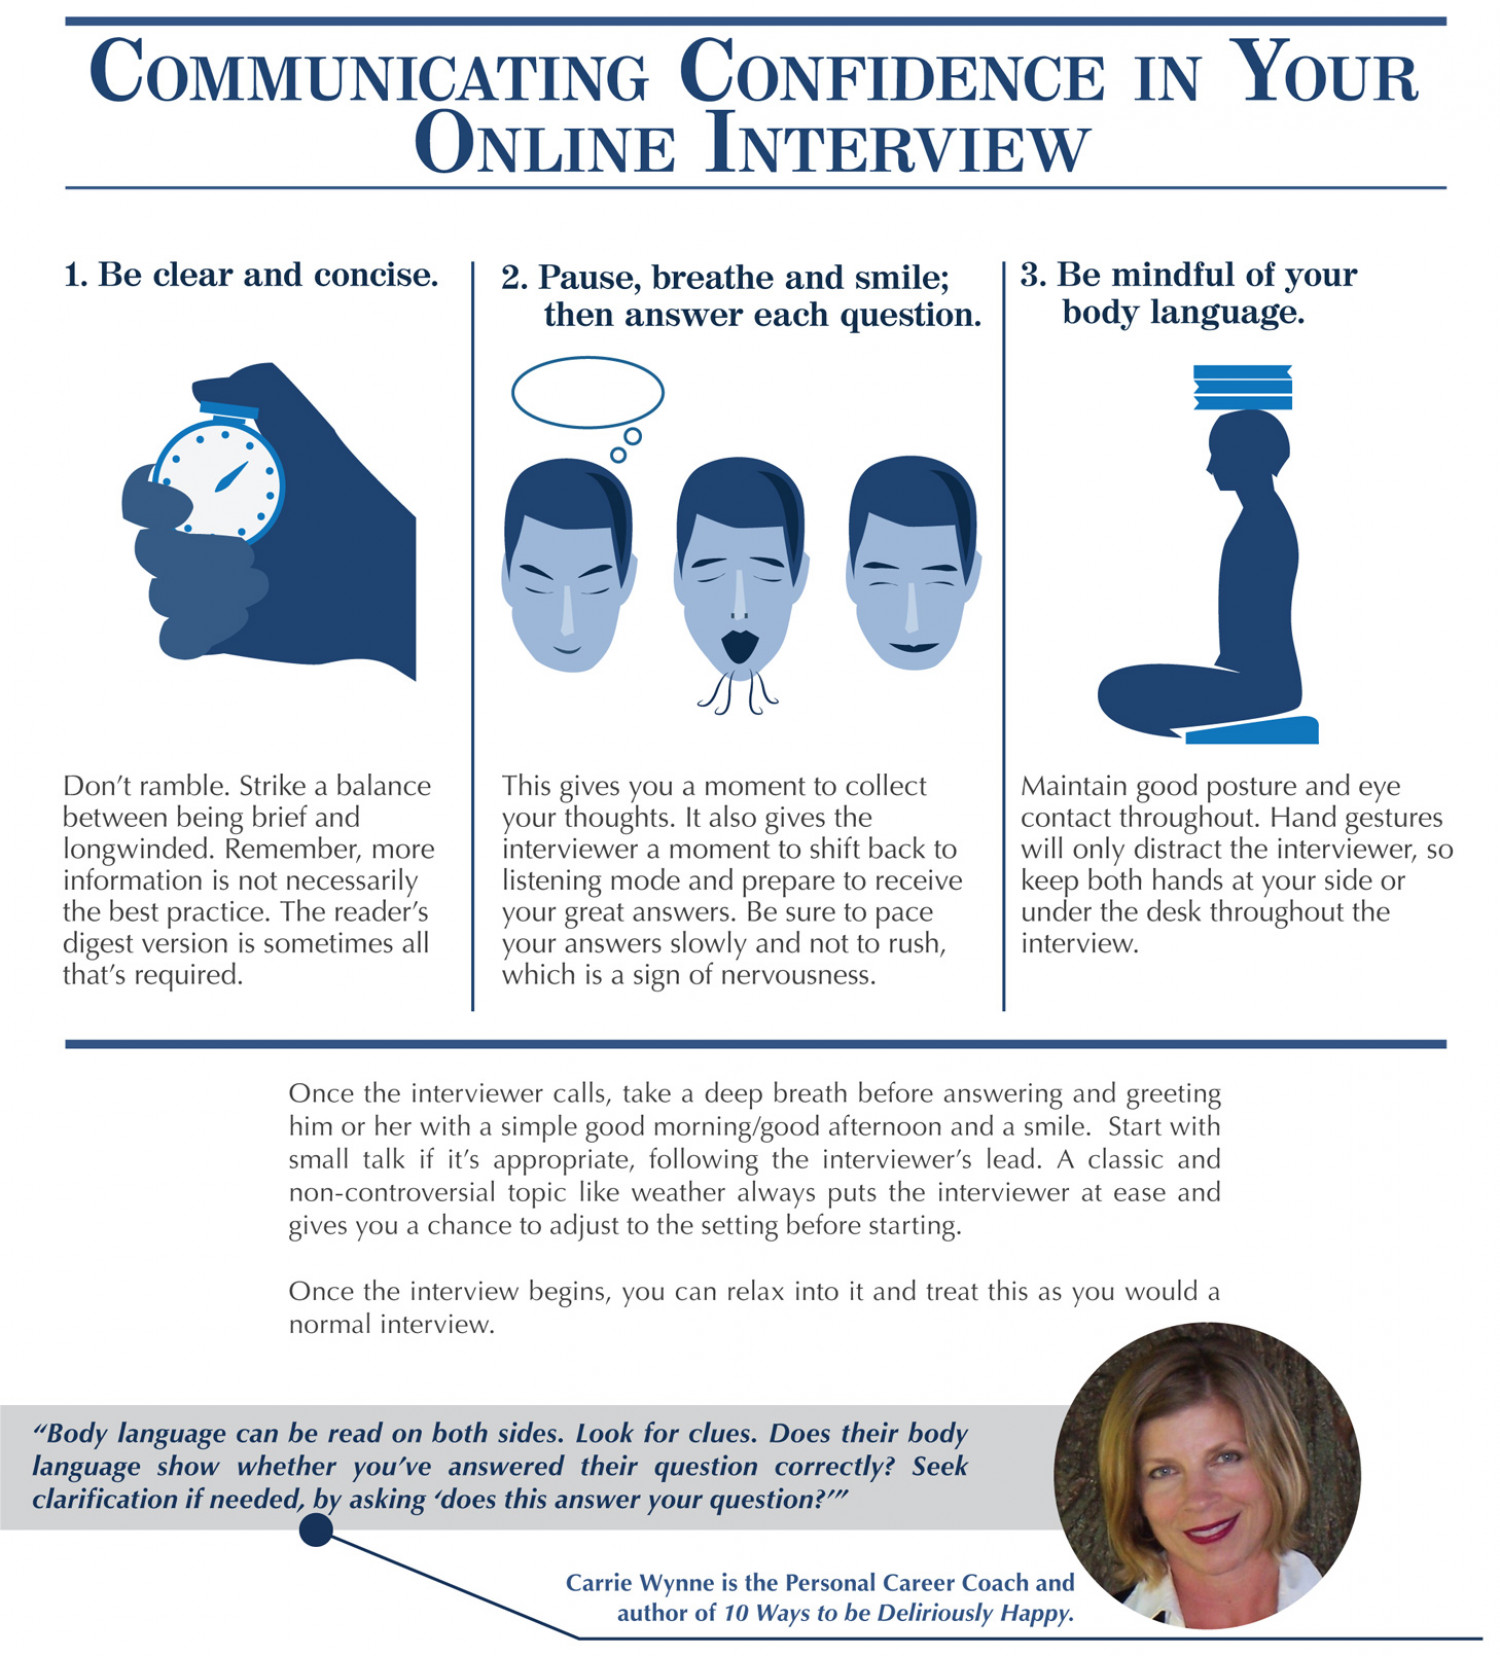 tips for online interviews visual ly tips for online interviews infographic